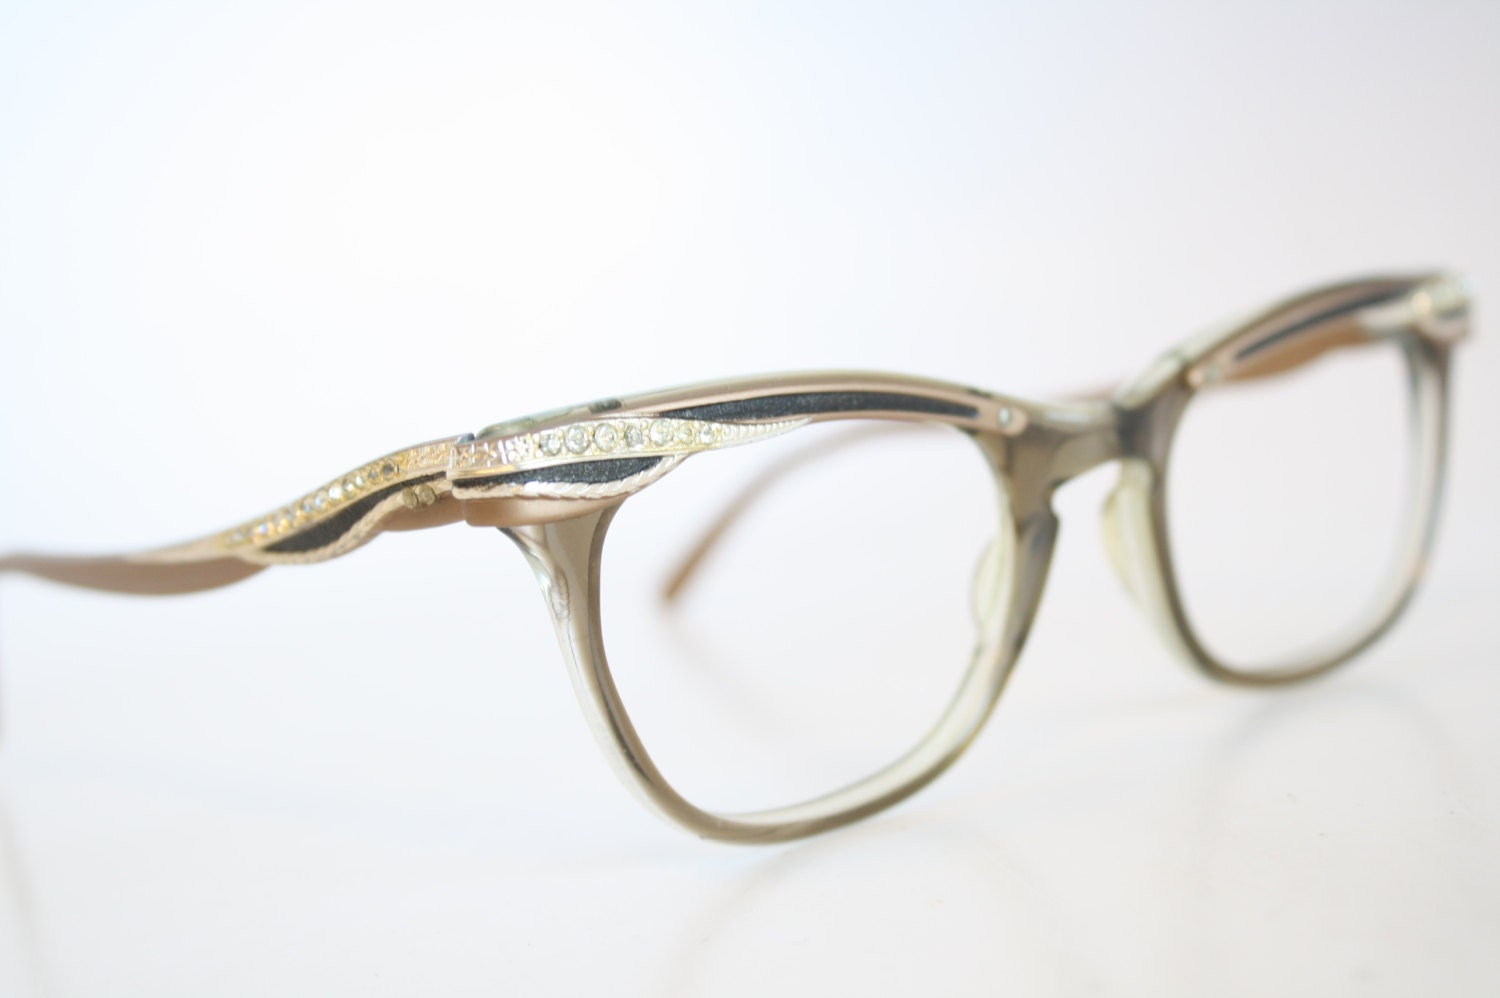 Black Cat Eye Reading Eyeglasses Vintage Eyewear Retro Glasses